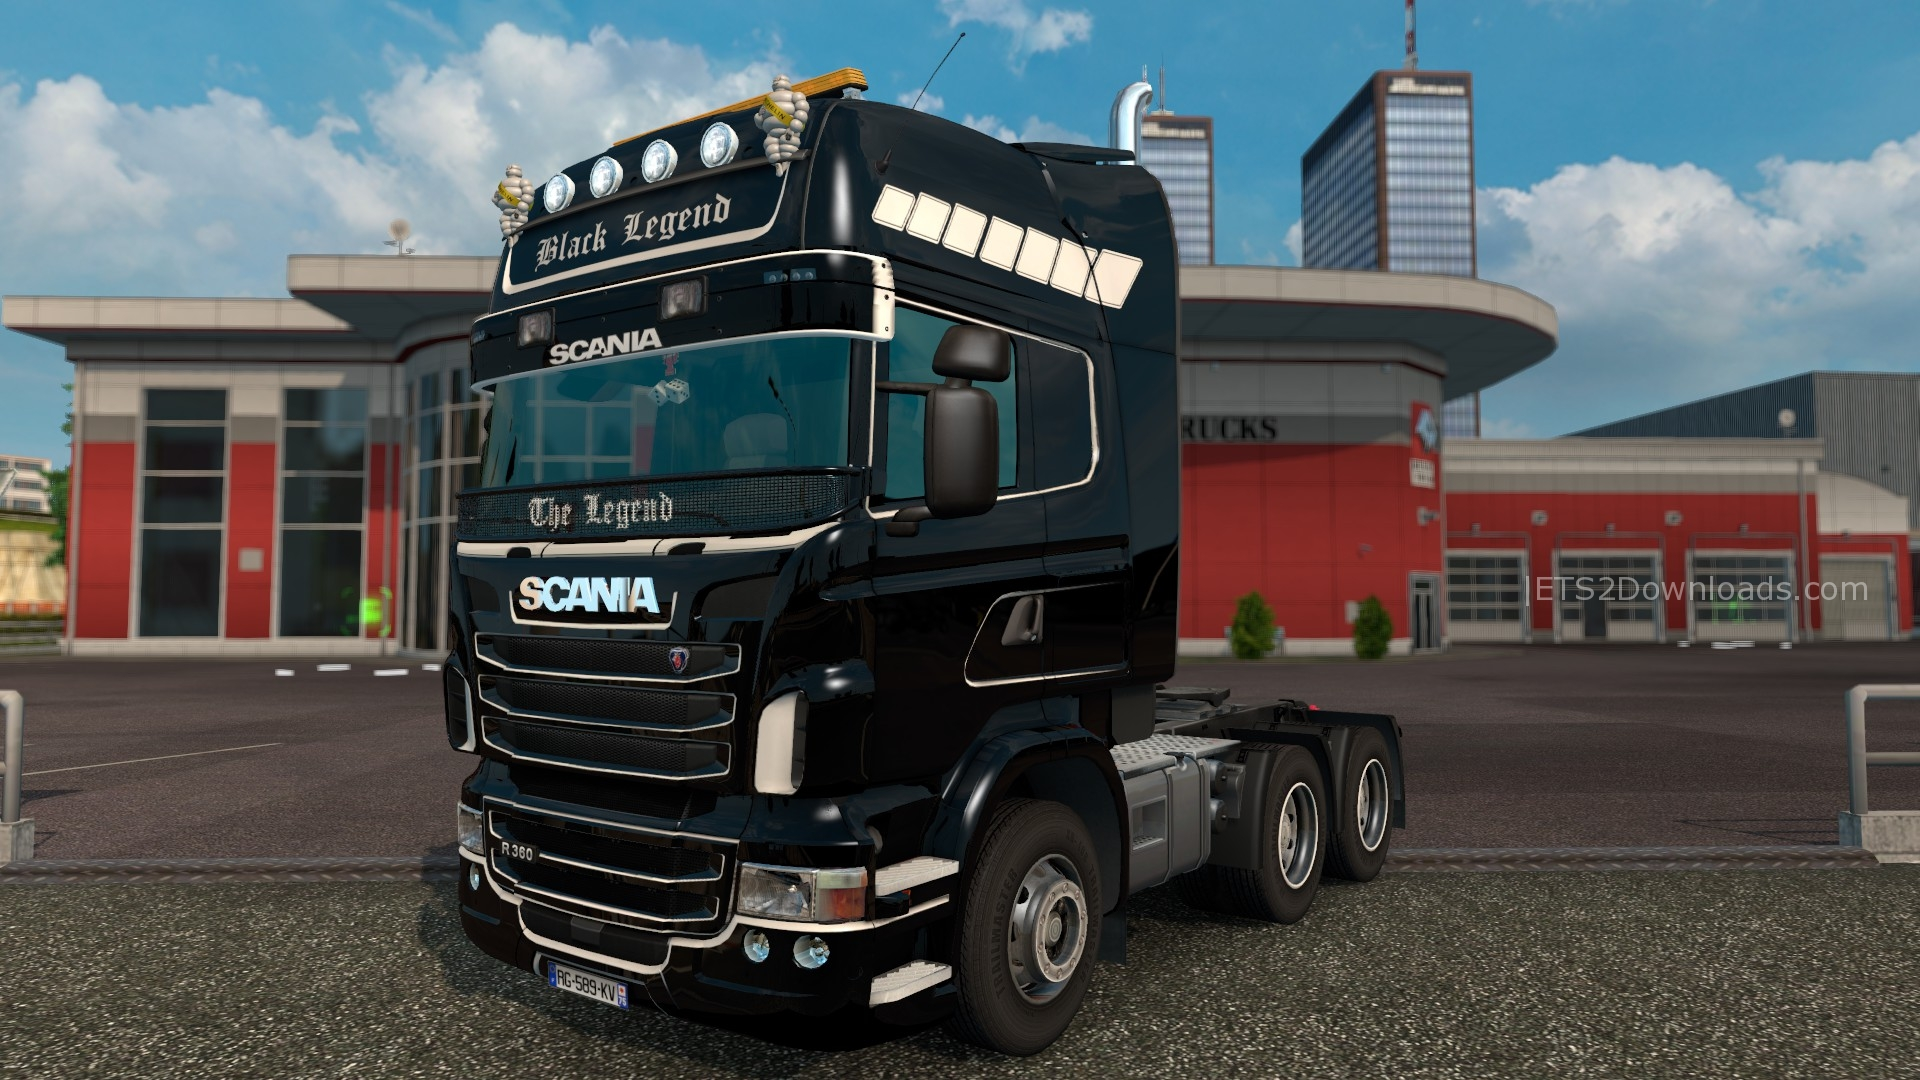 black-legend-skin-for-scania-rjl